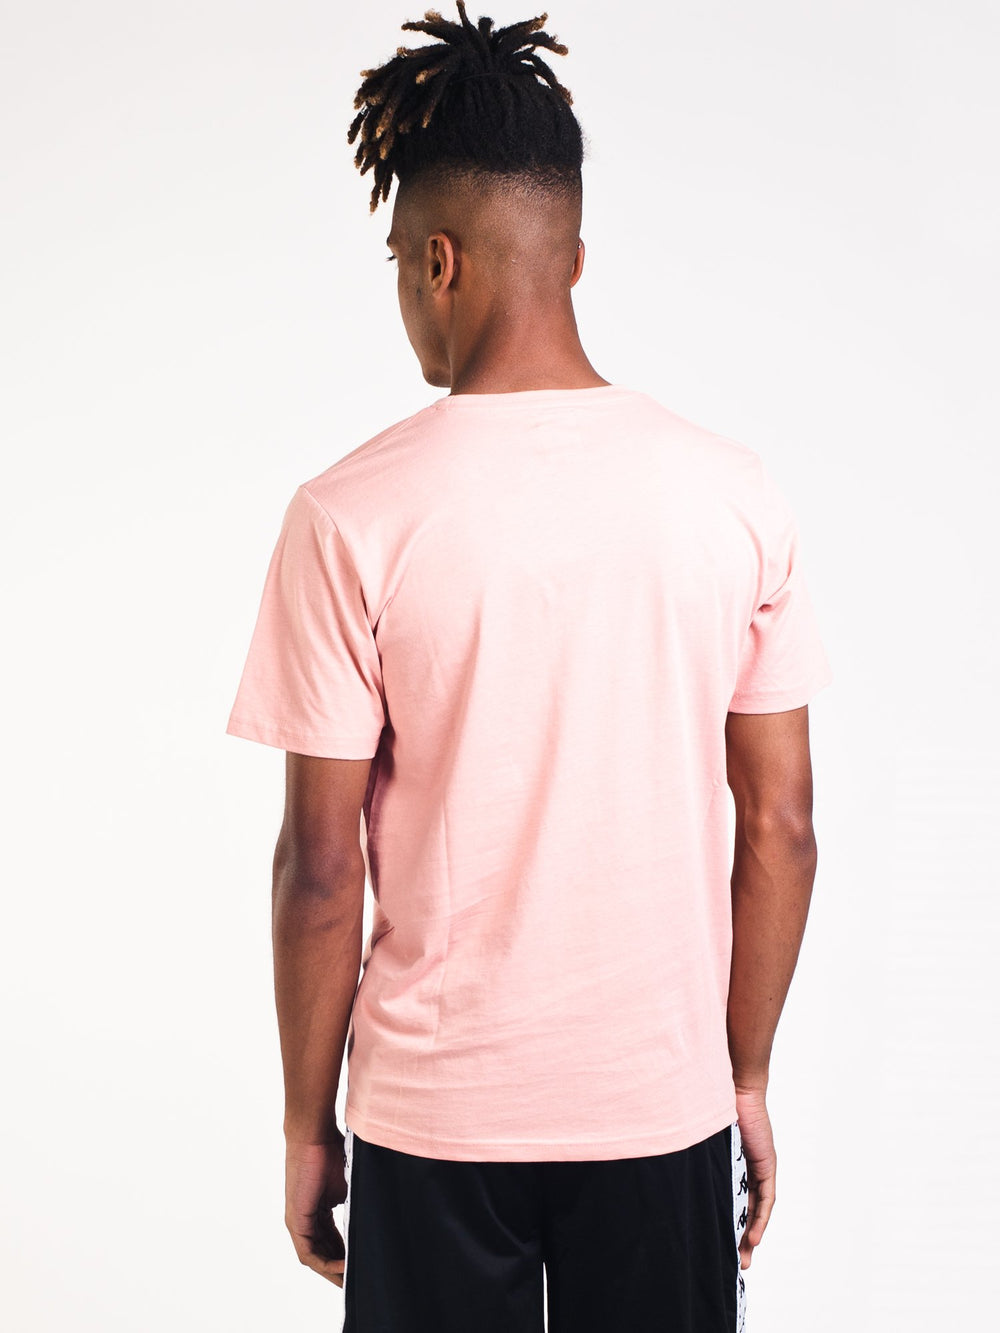 MENS AUTHENTIC ESTESSI T - PINK